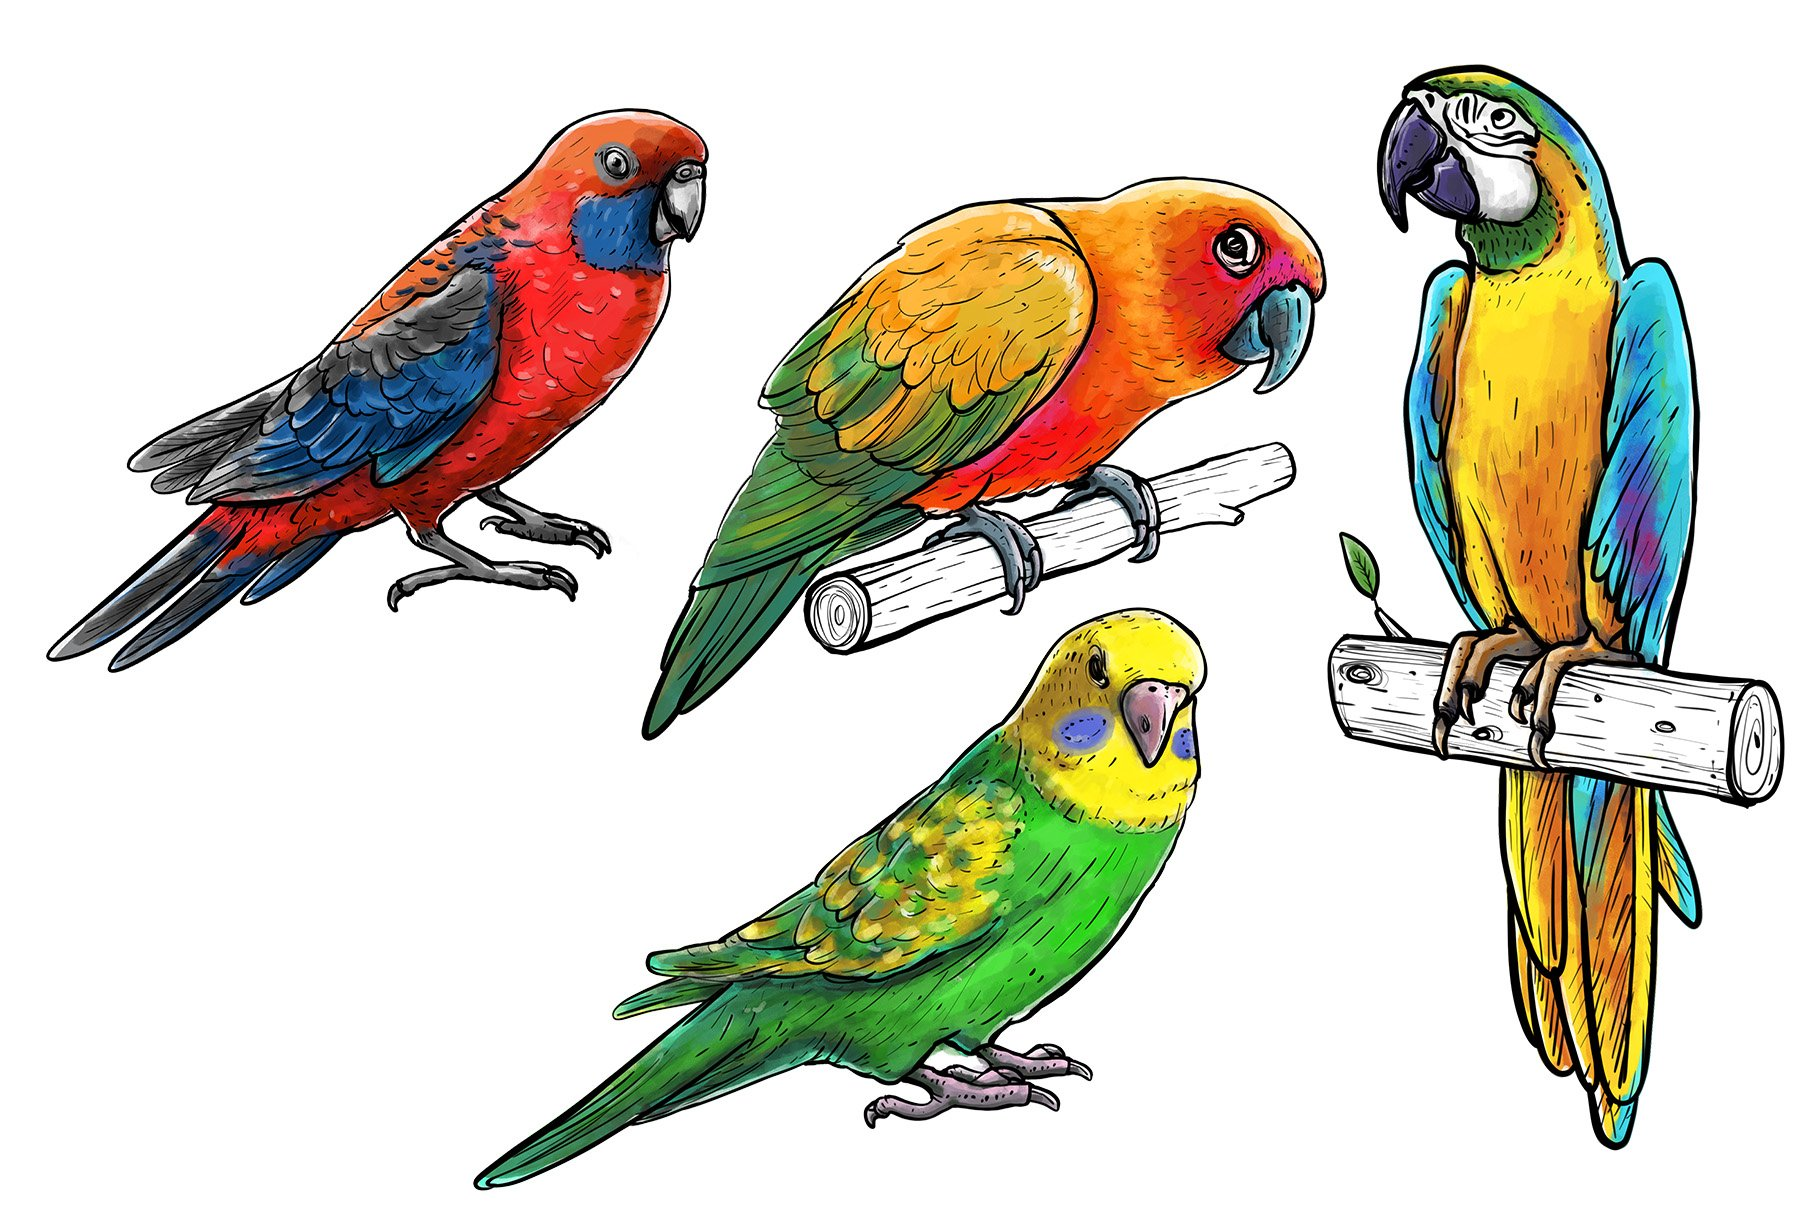 Drawn parrots example image 4